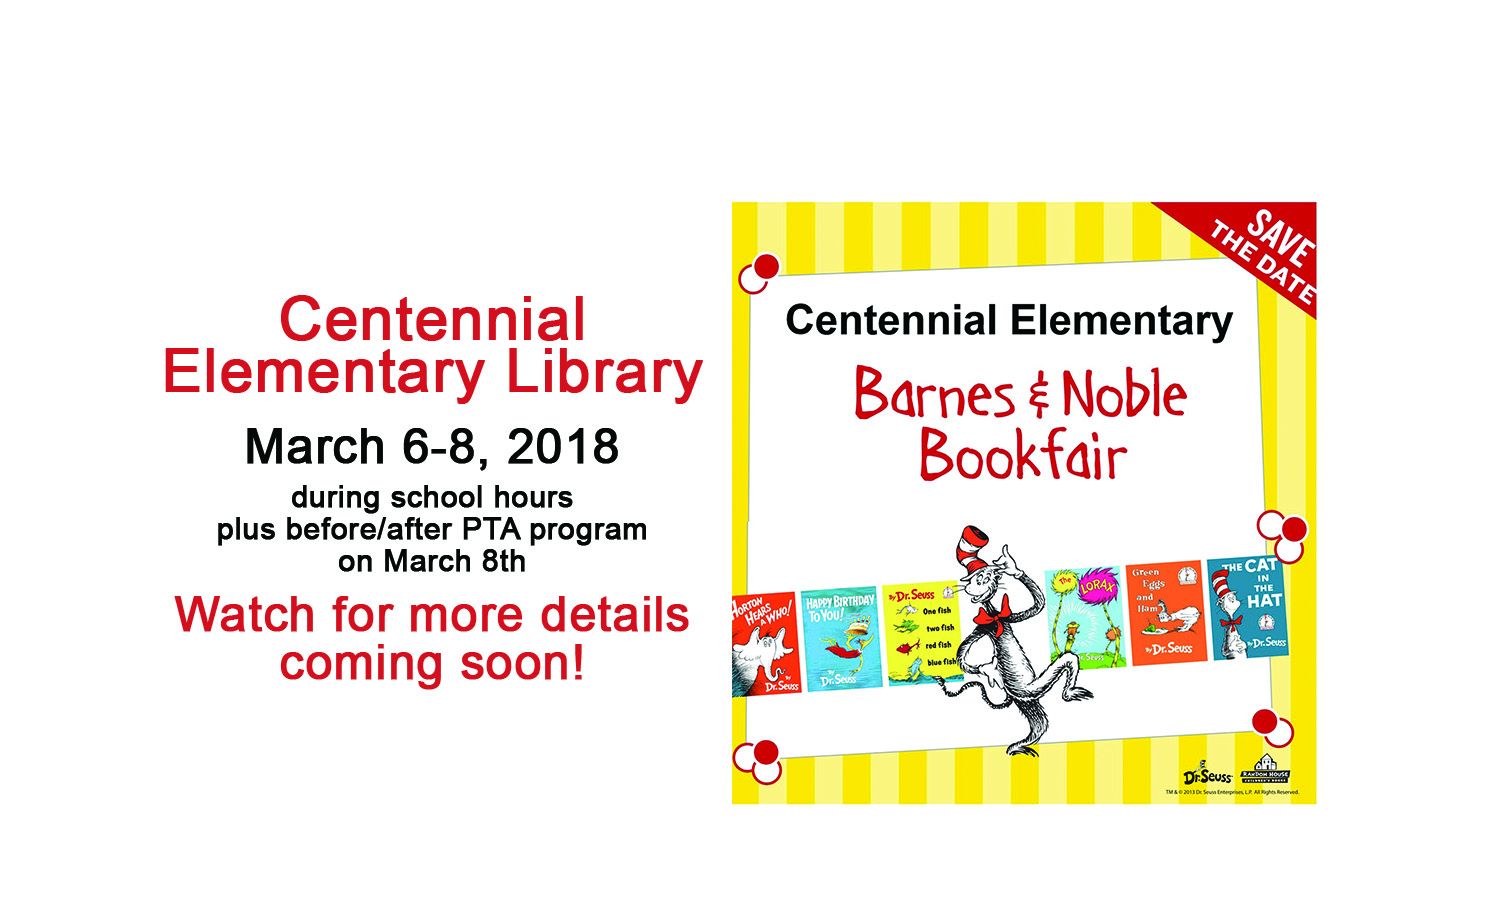 Centennial elementary school homepage lubbock isd administering climate survey through march 9 aiddatafo Gallery